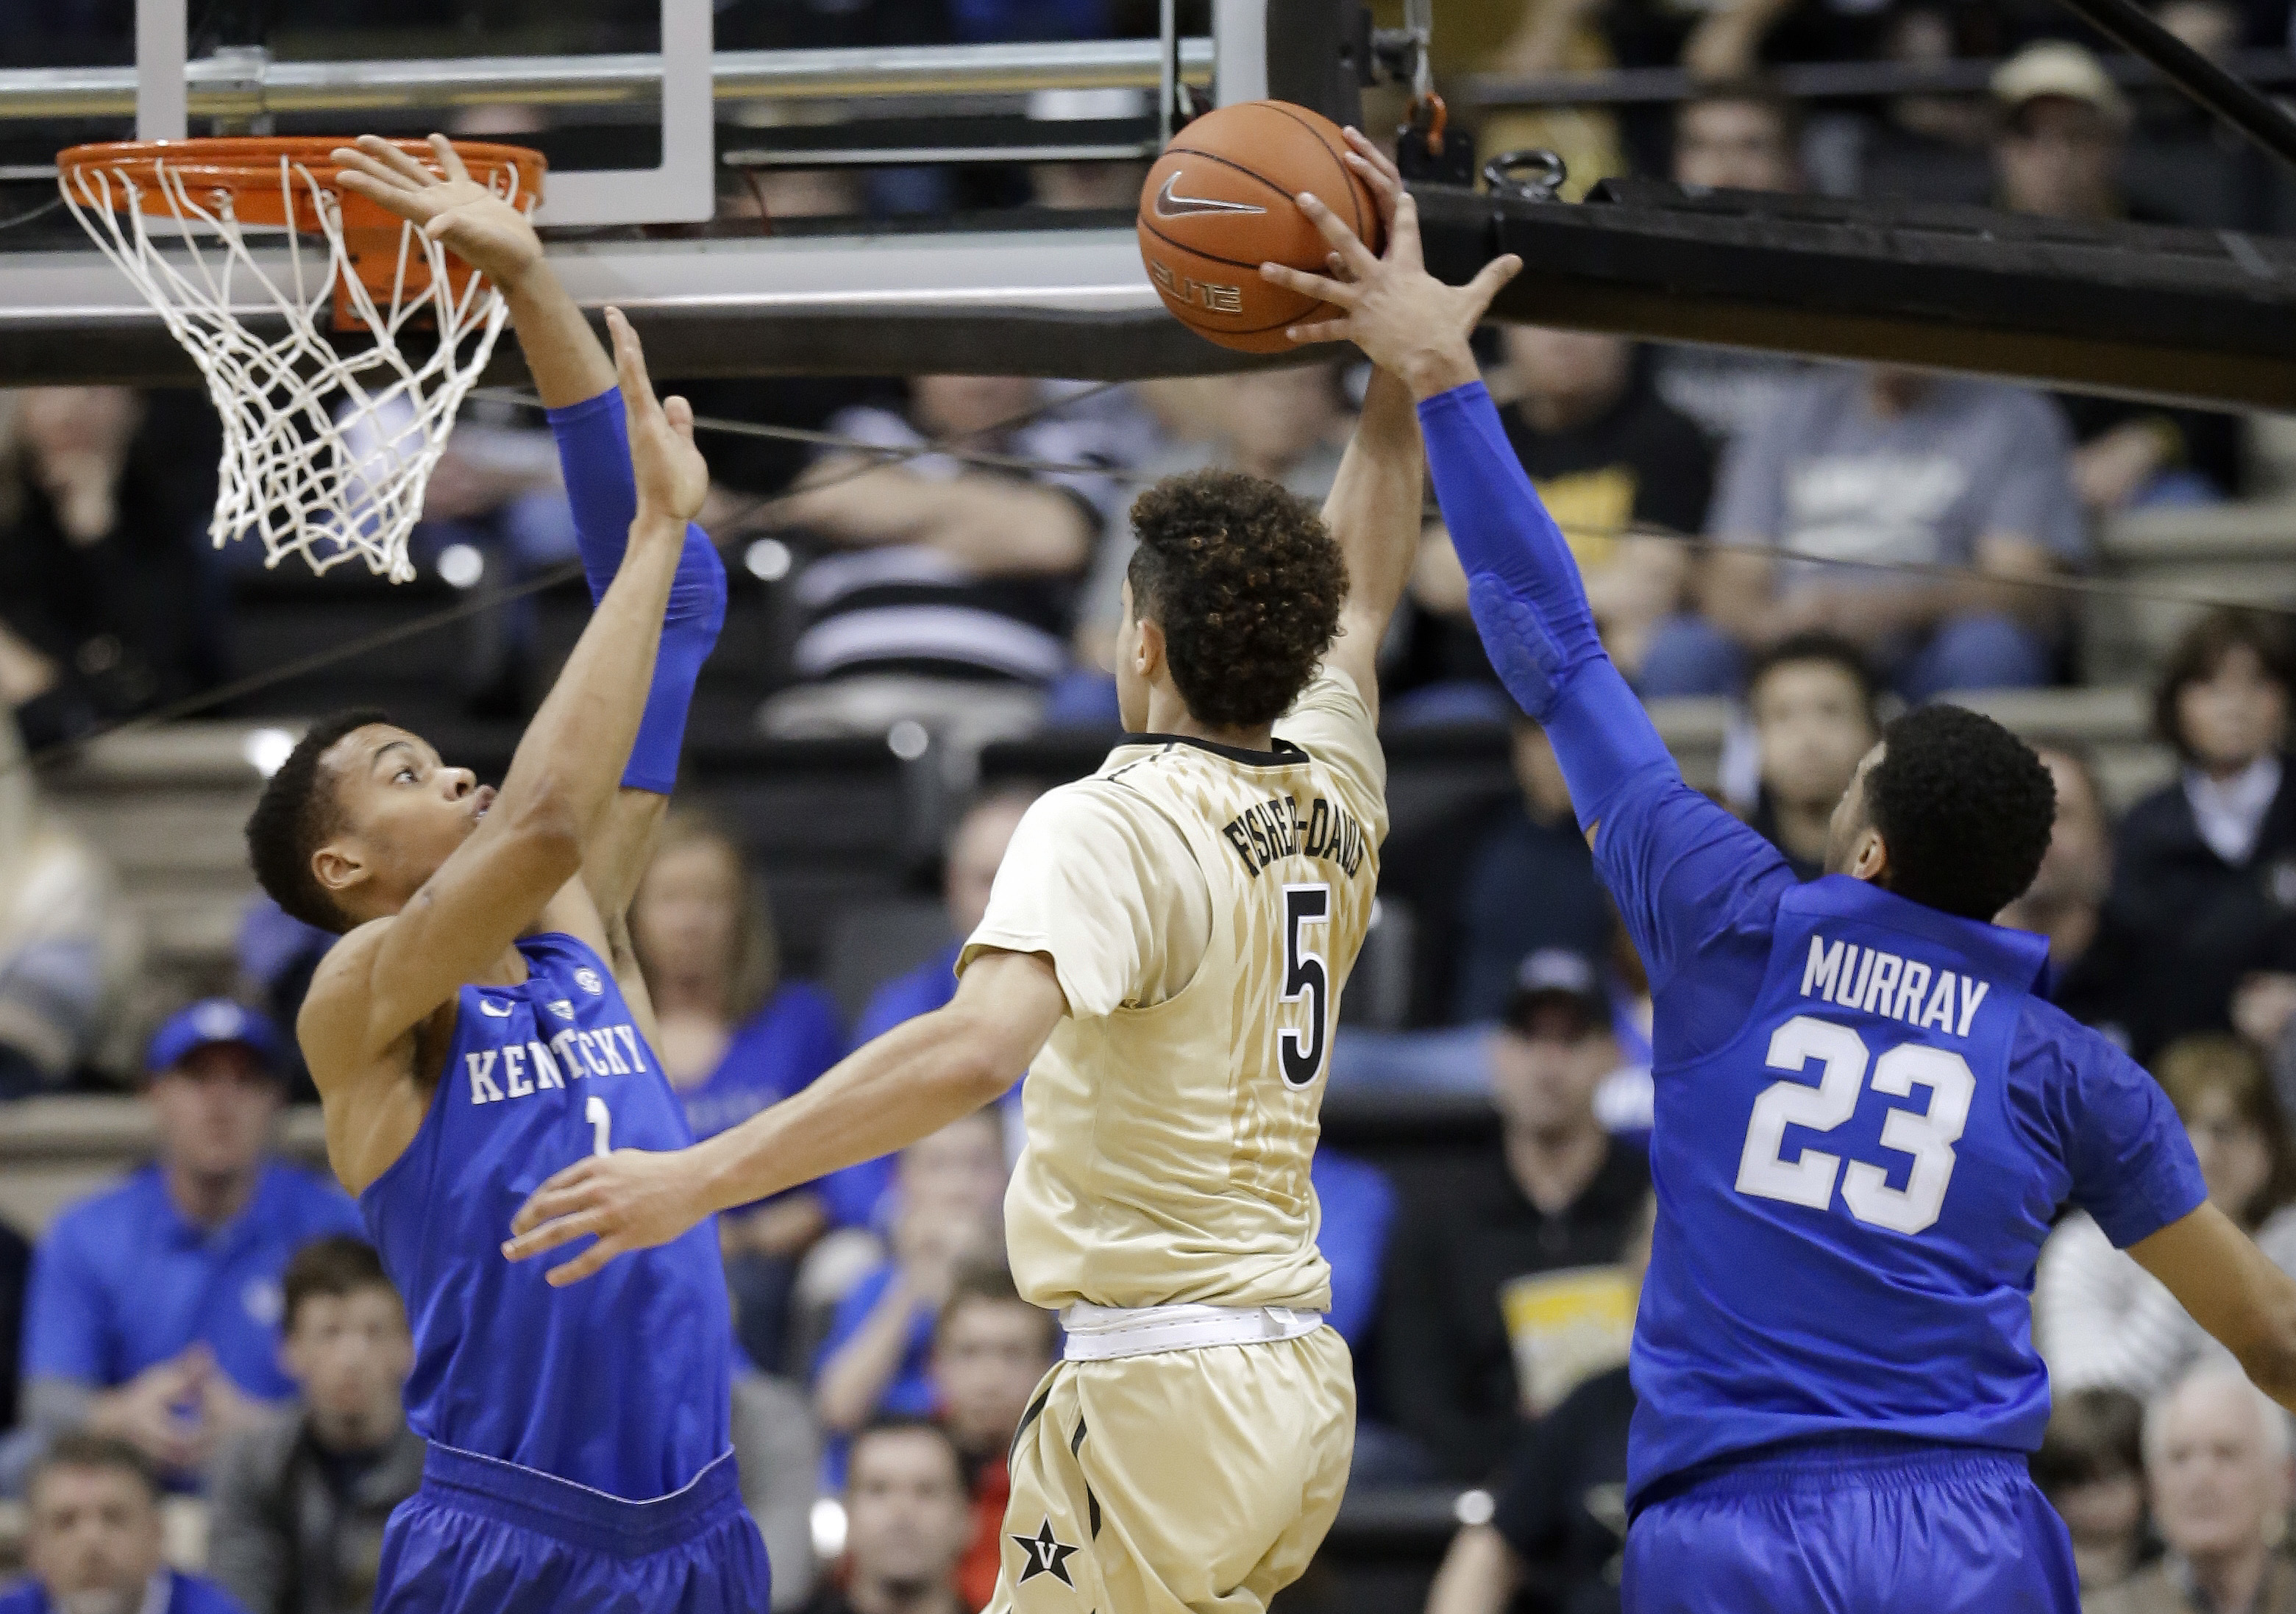 Vanderbilt guard Matthew Fisher-Davis (5) drives between Kentucky's Skal Labissiere (1) and Jamal Murray (23) in the first half of an NCAA college basketball game Saturday, Feb. 27, 2016, in Nashville, Tenn. (AP Photo/Mark Humphrey)